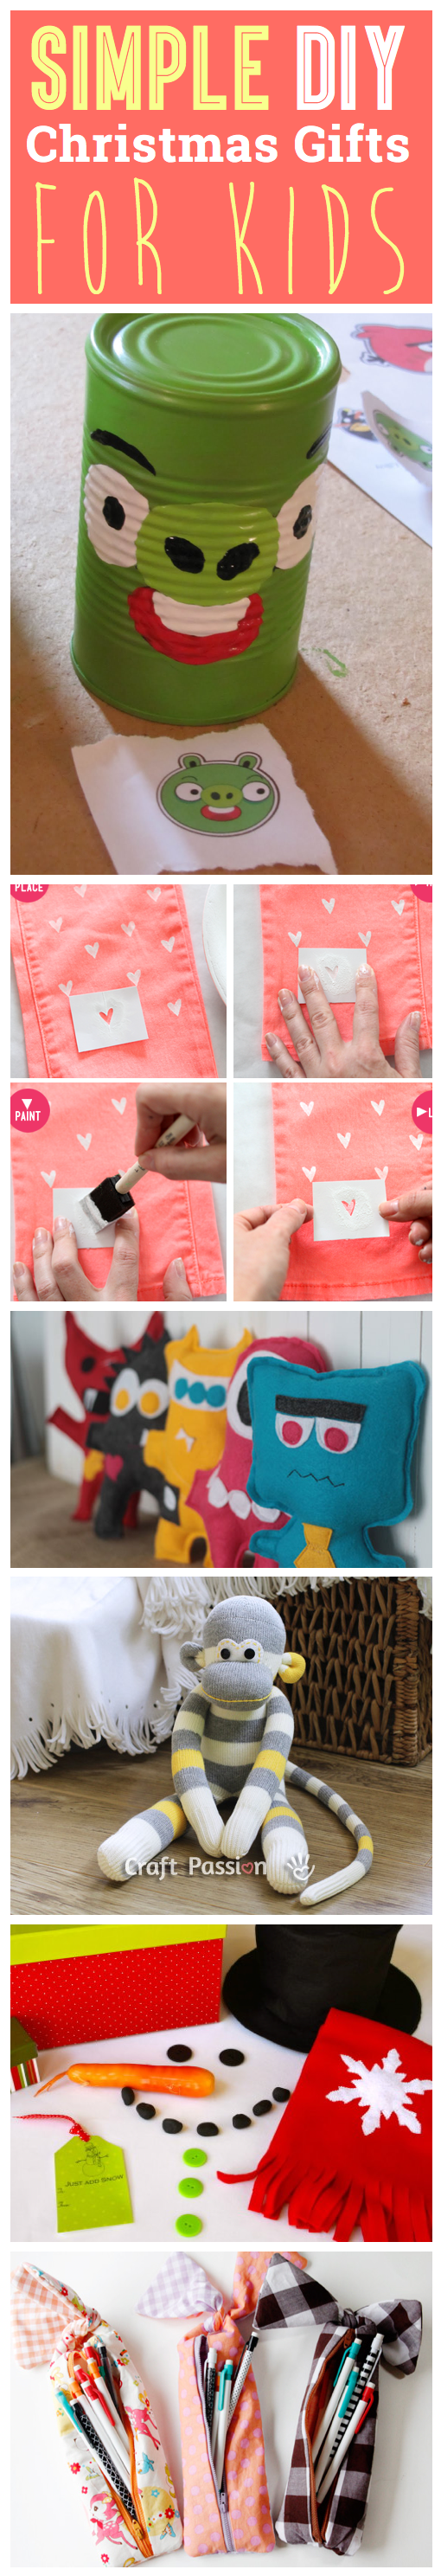 7 Simple DIY Christmas Gifts For Kids – Cute DIY Projects